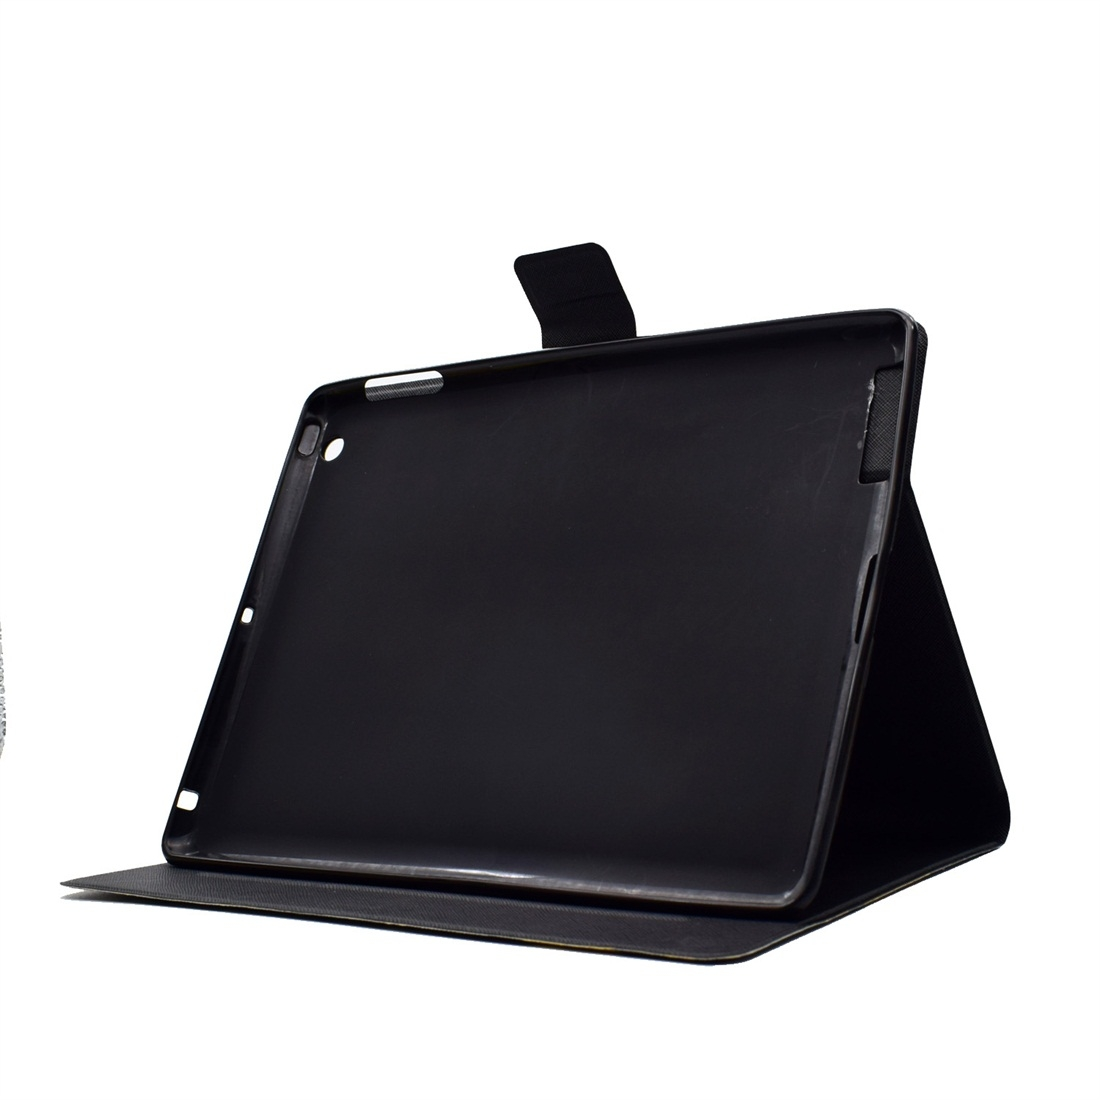 iPad 4 Case For iPad 4/ 5/ 6 Featuring A Protective Leather Cover With Auto Sleep (White Gold)